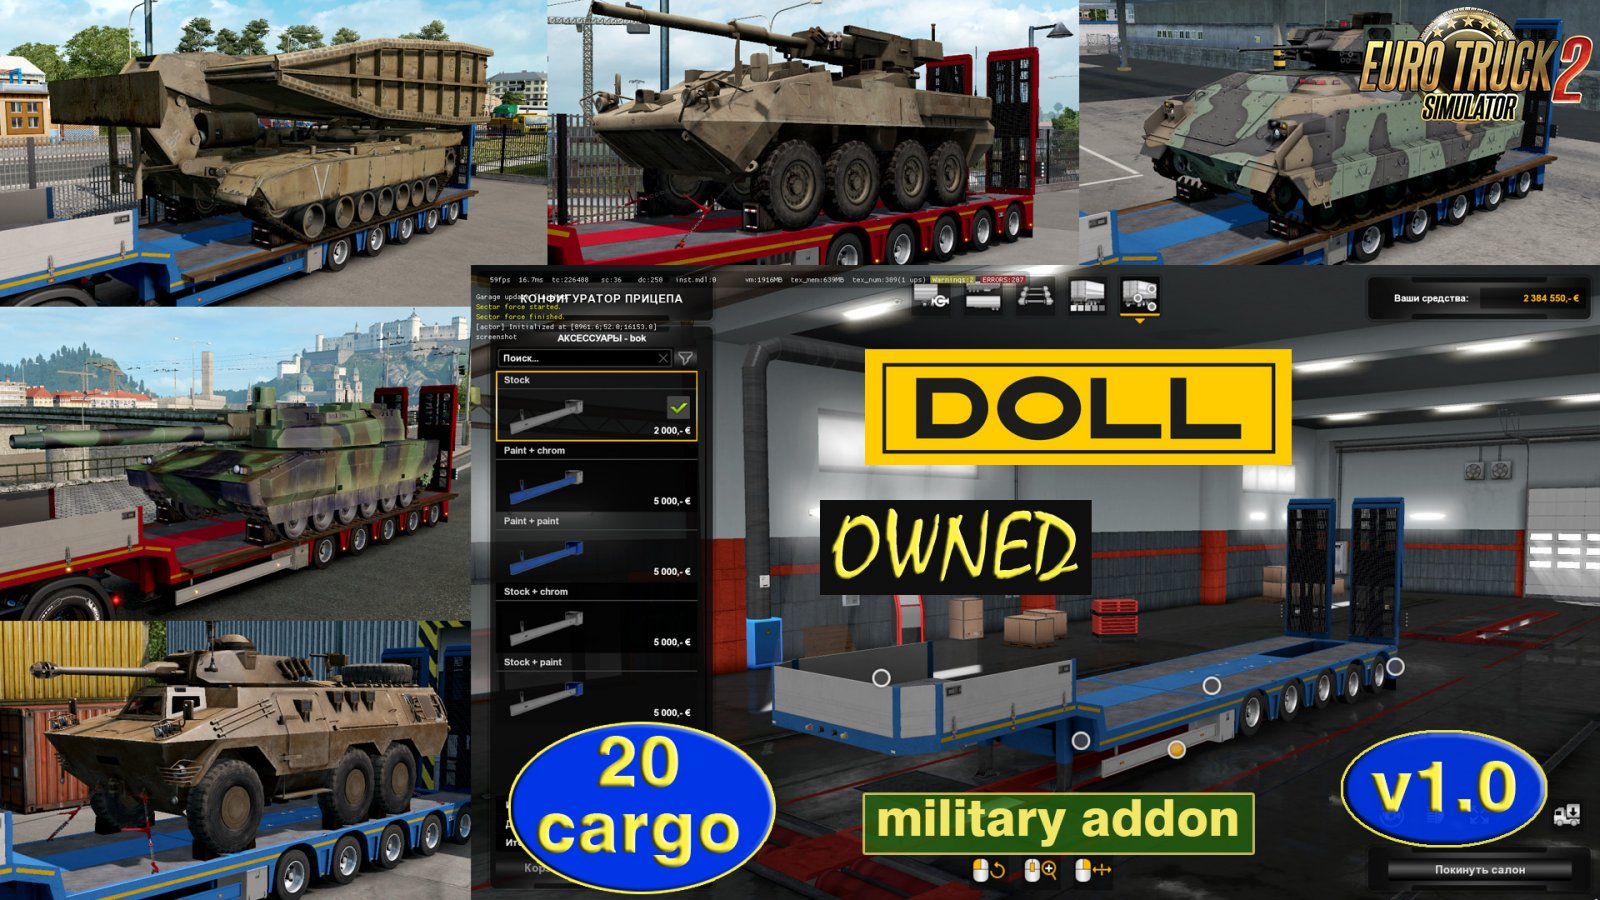 Military addon for Doll Panther v1.0 by Jazzycat